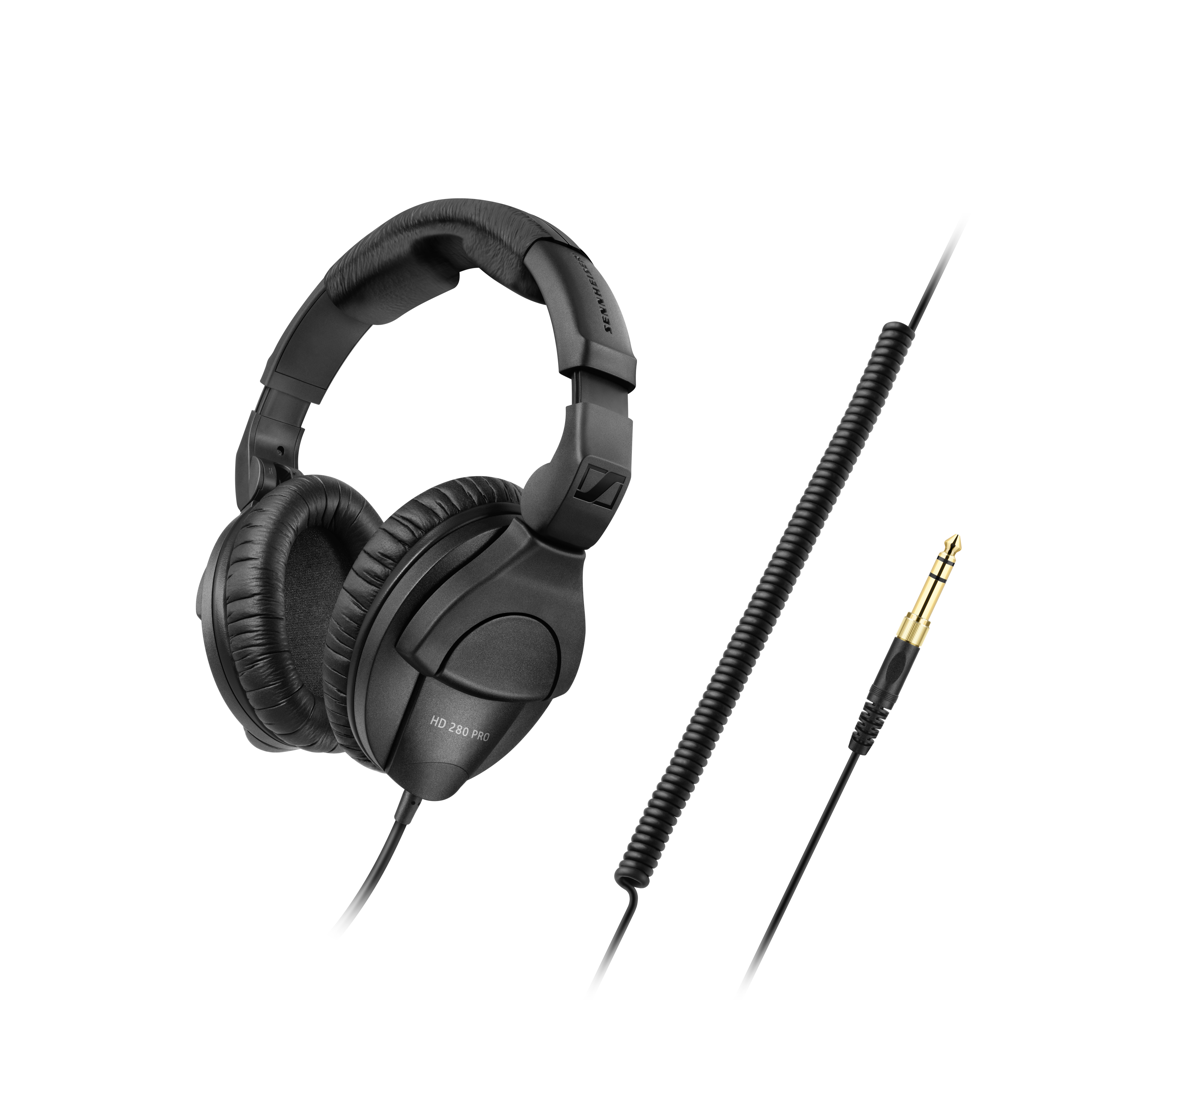 The HD 280 PRO is Sennheiser's special deal for the month of May